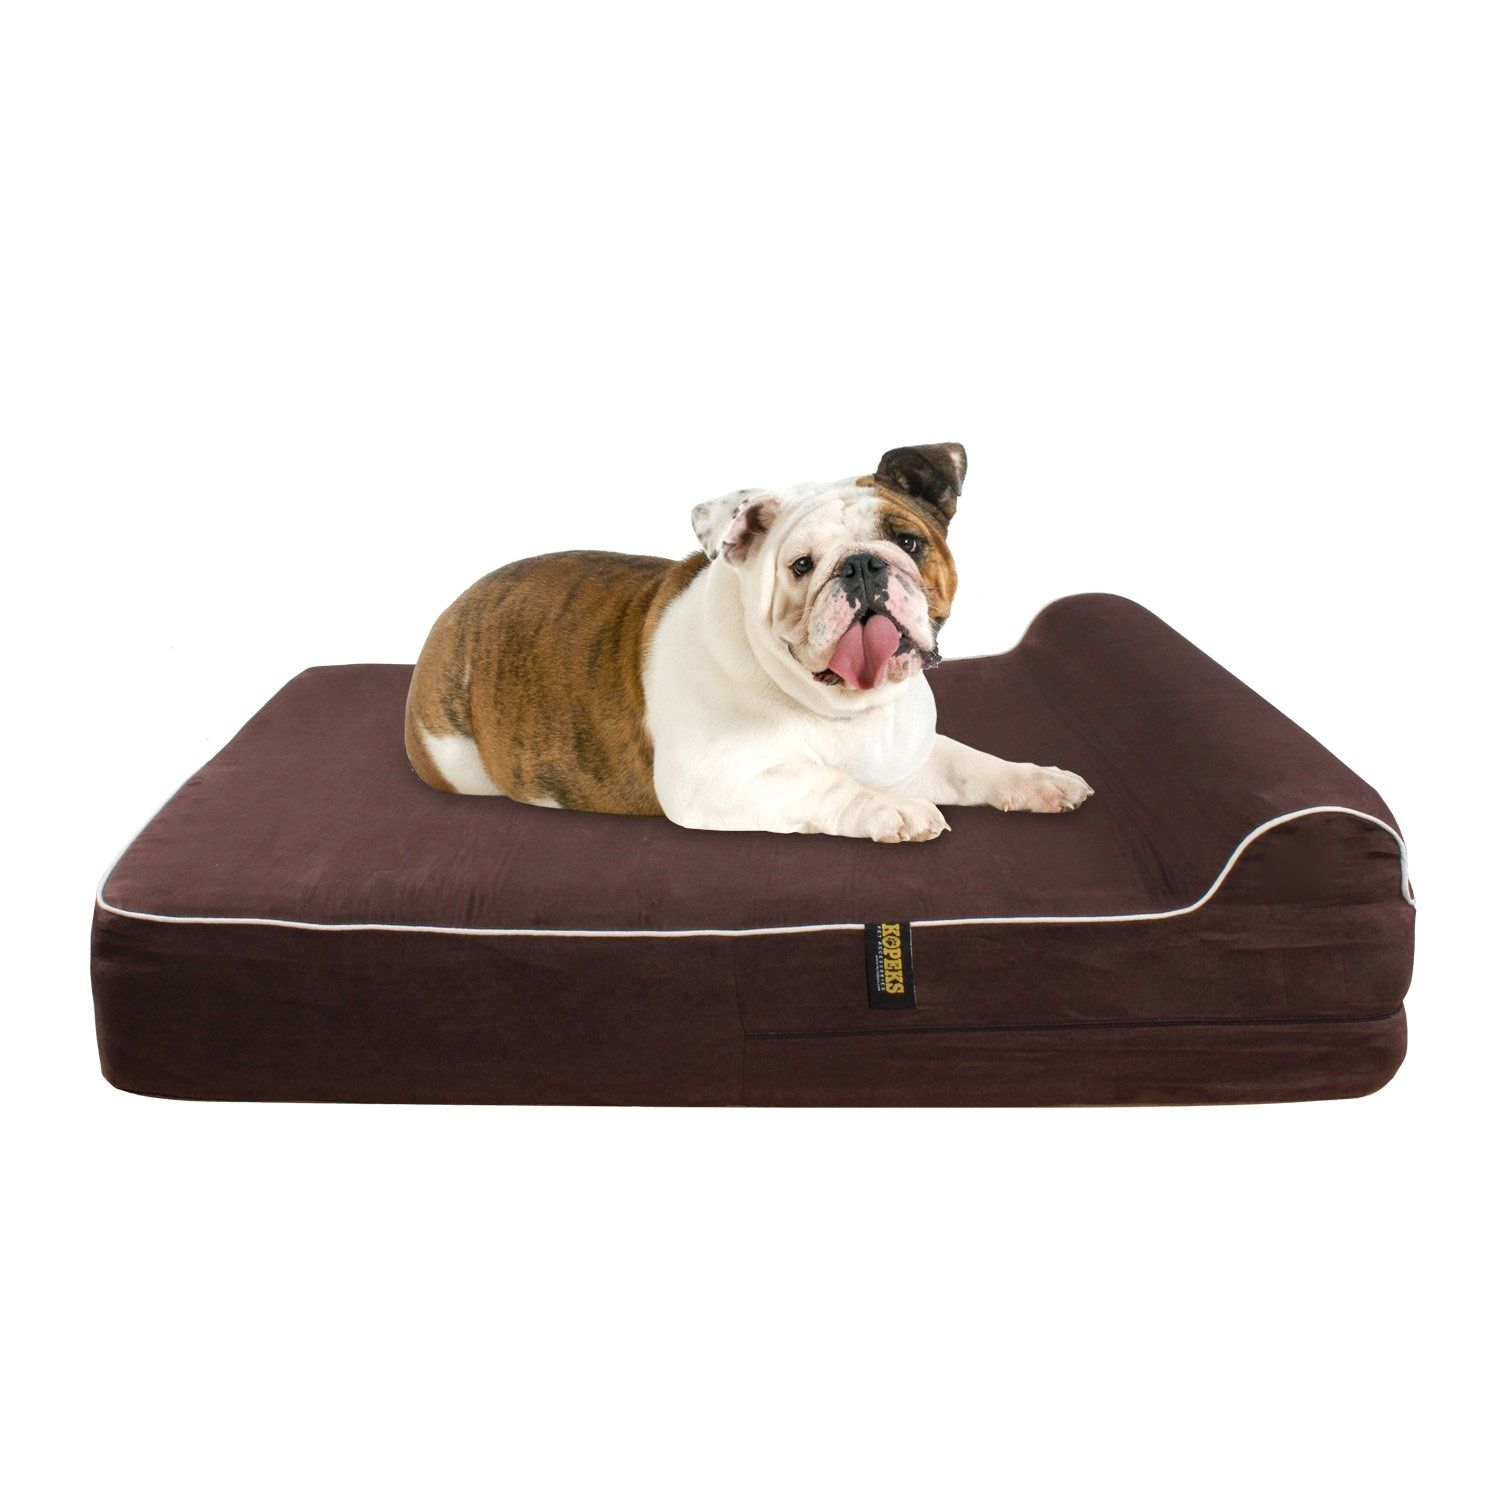 Dark Chocolate Orthopedic Bed       Deal of the day >>>   http://bit.ly/1PsVwyL